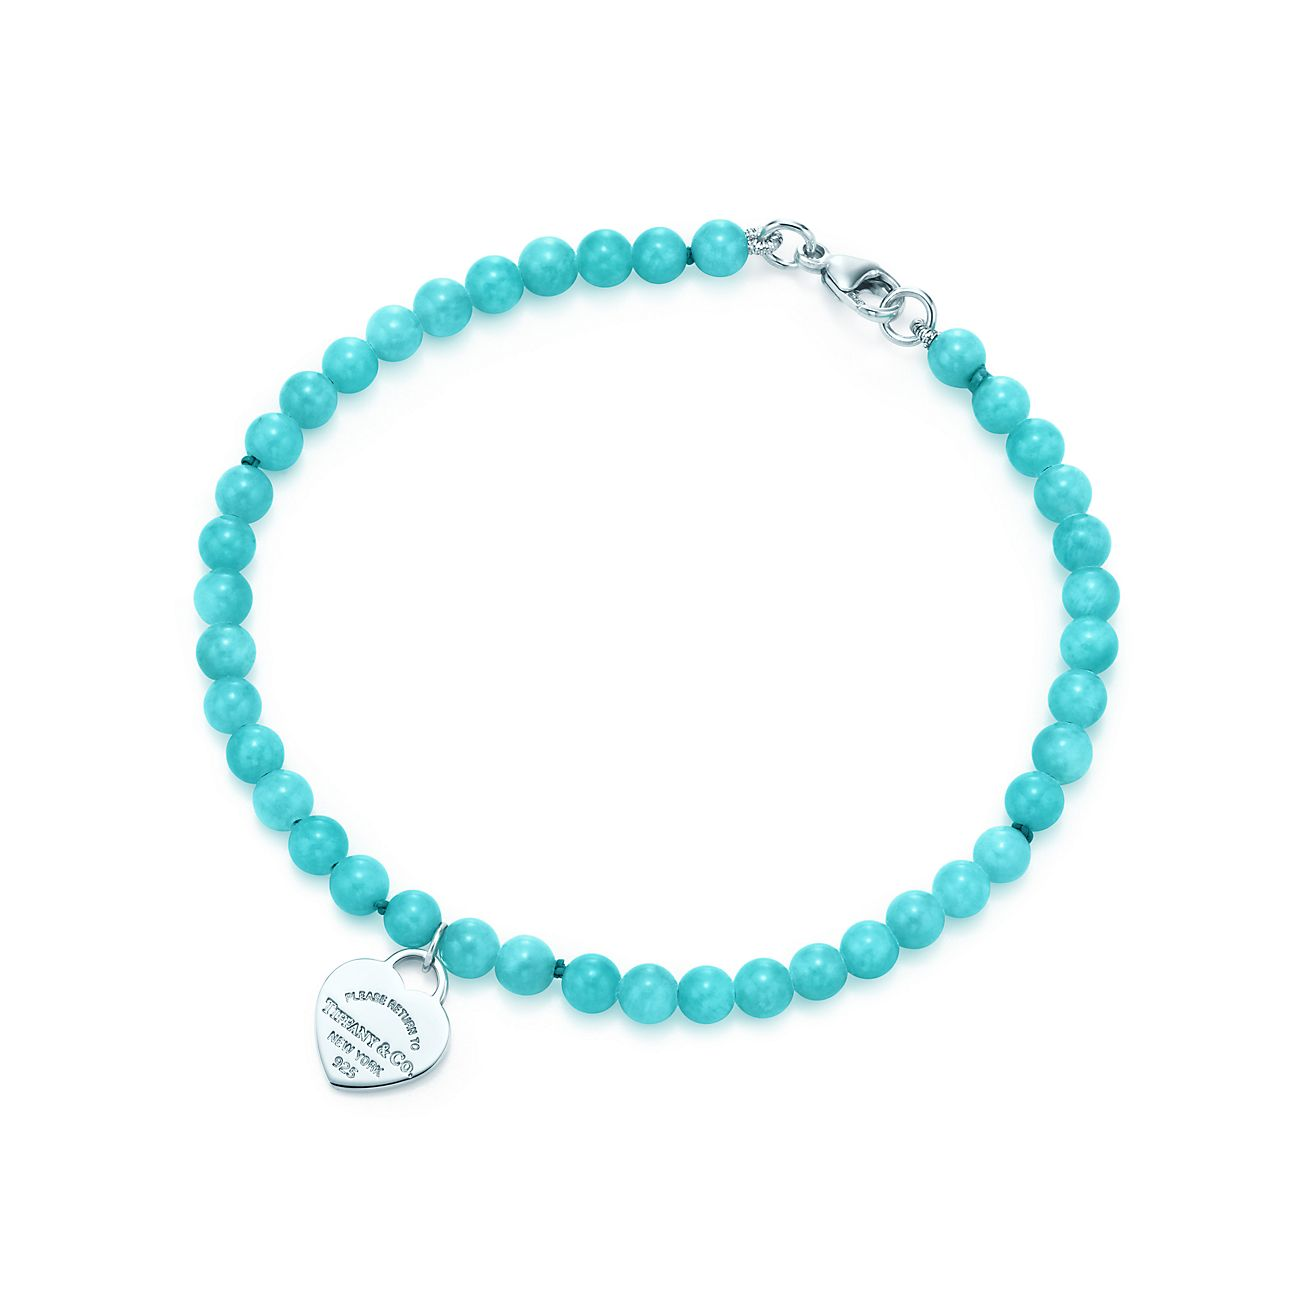 Return to Tiffany mini heart tag in sterling silver on a bead bracelet - Size 7 in Tiffany & Co. Q2W4azS